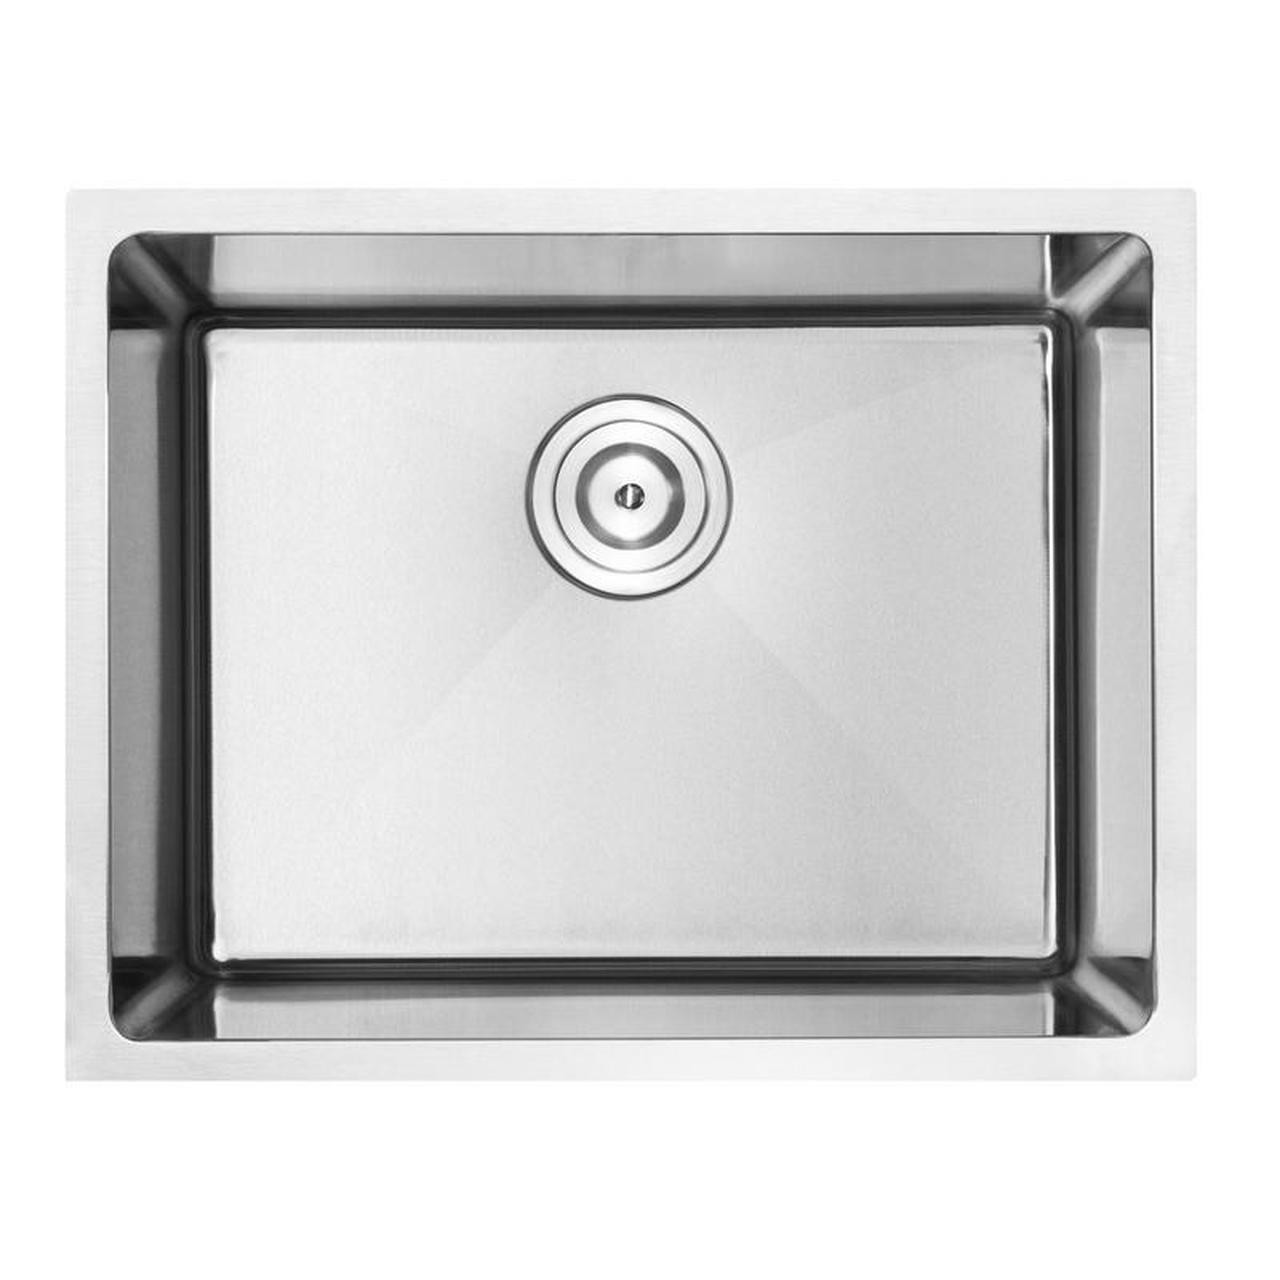 18-Gauge Stainless Steel Undermount Single Basin Modern Kitchen Sink